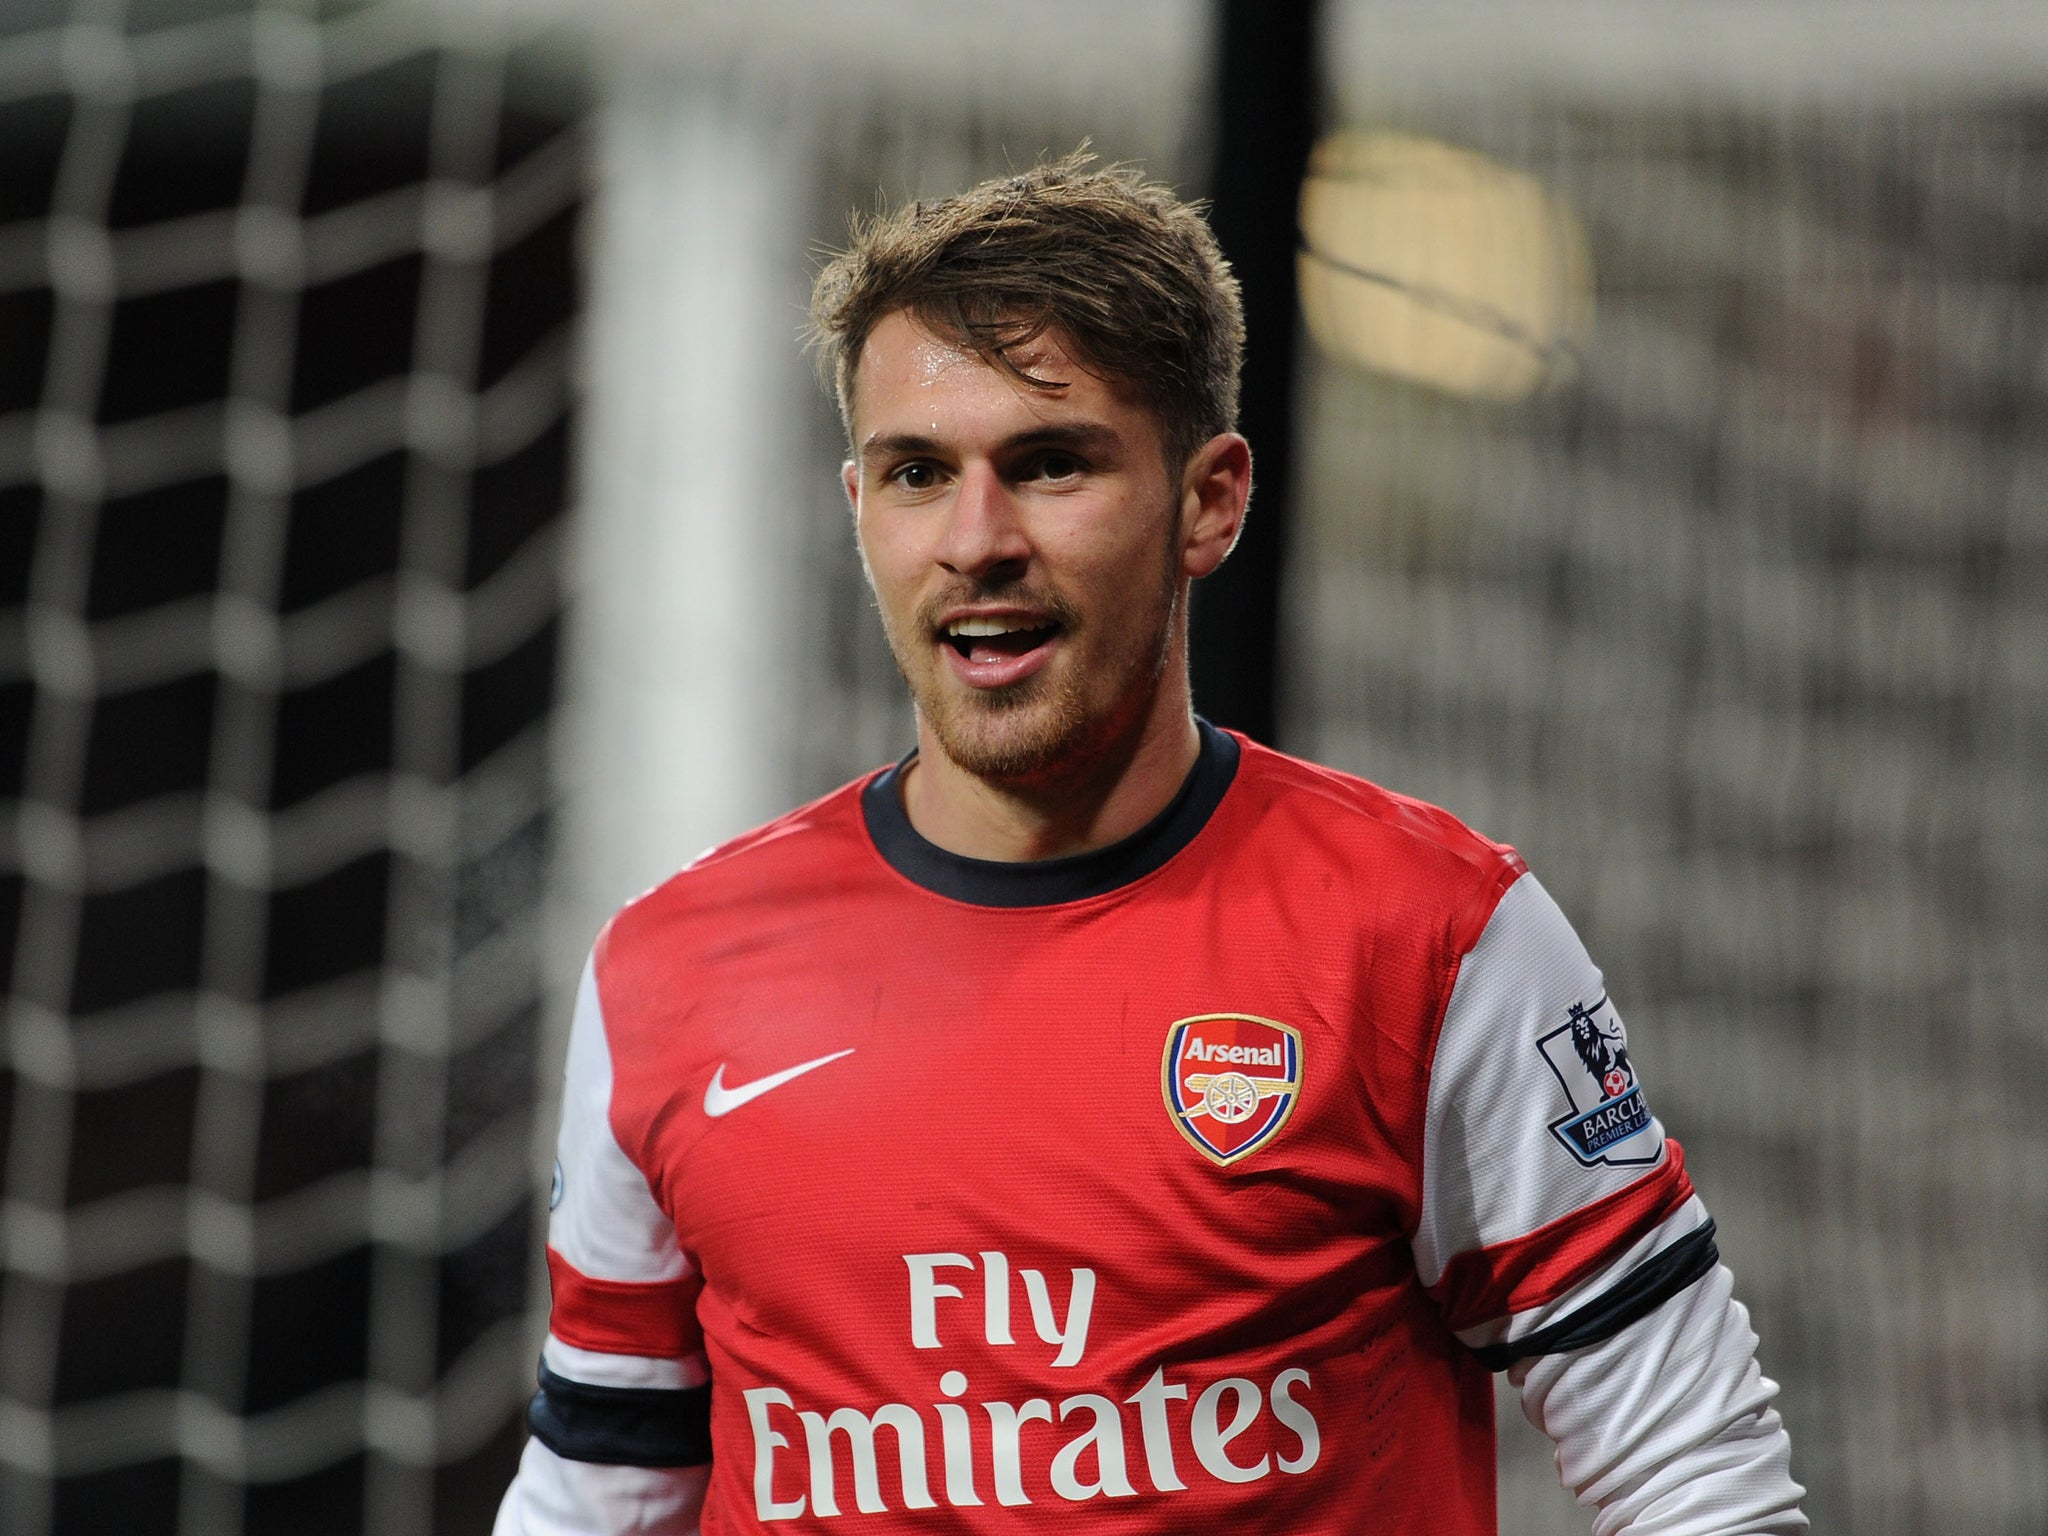 Aaron Ramsey to be rewarded for Arsenal form with five year